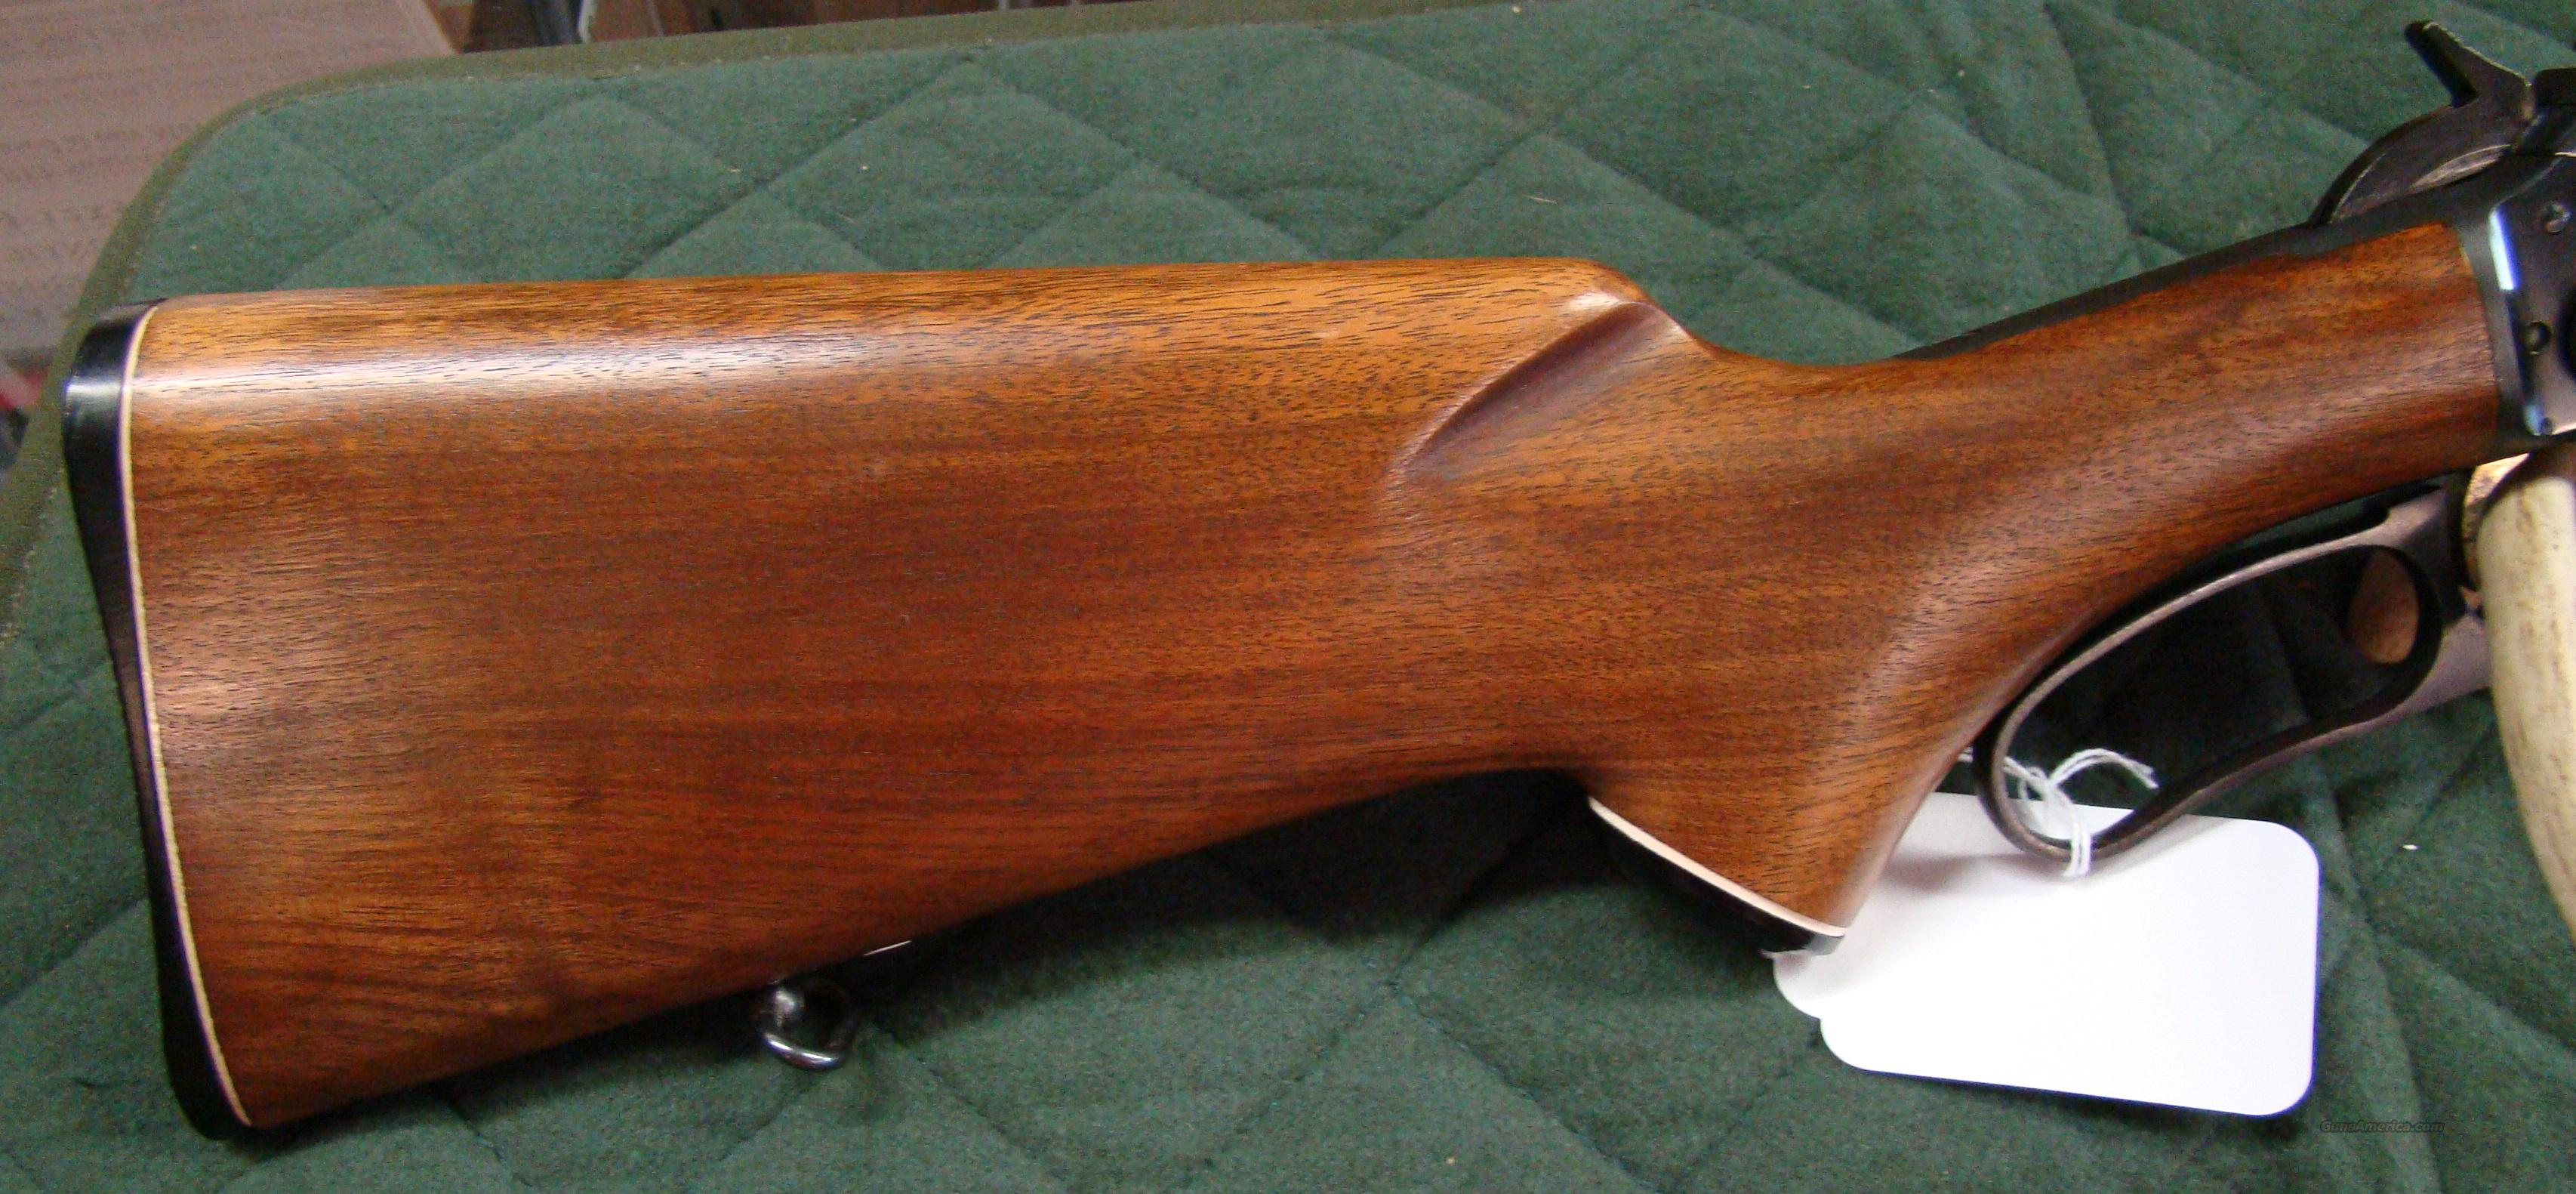 "Marlin 39A 22 LR 24"" Lever Action Rifle  Guns > Rifles > Marlin Rifles > Modern > Lever Action"